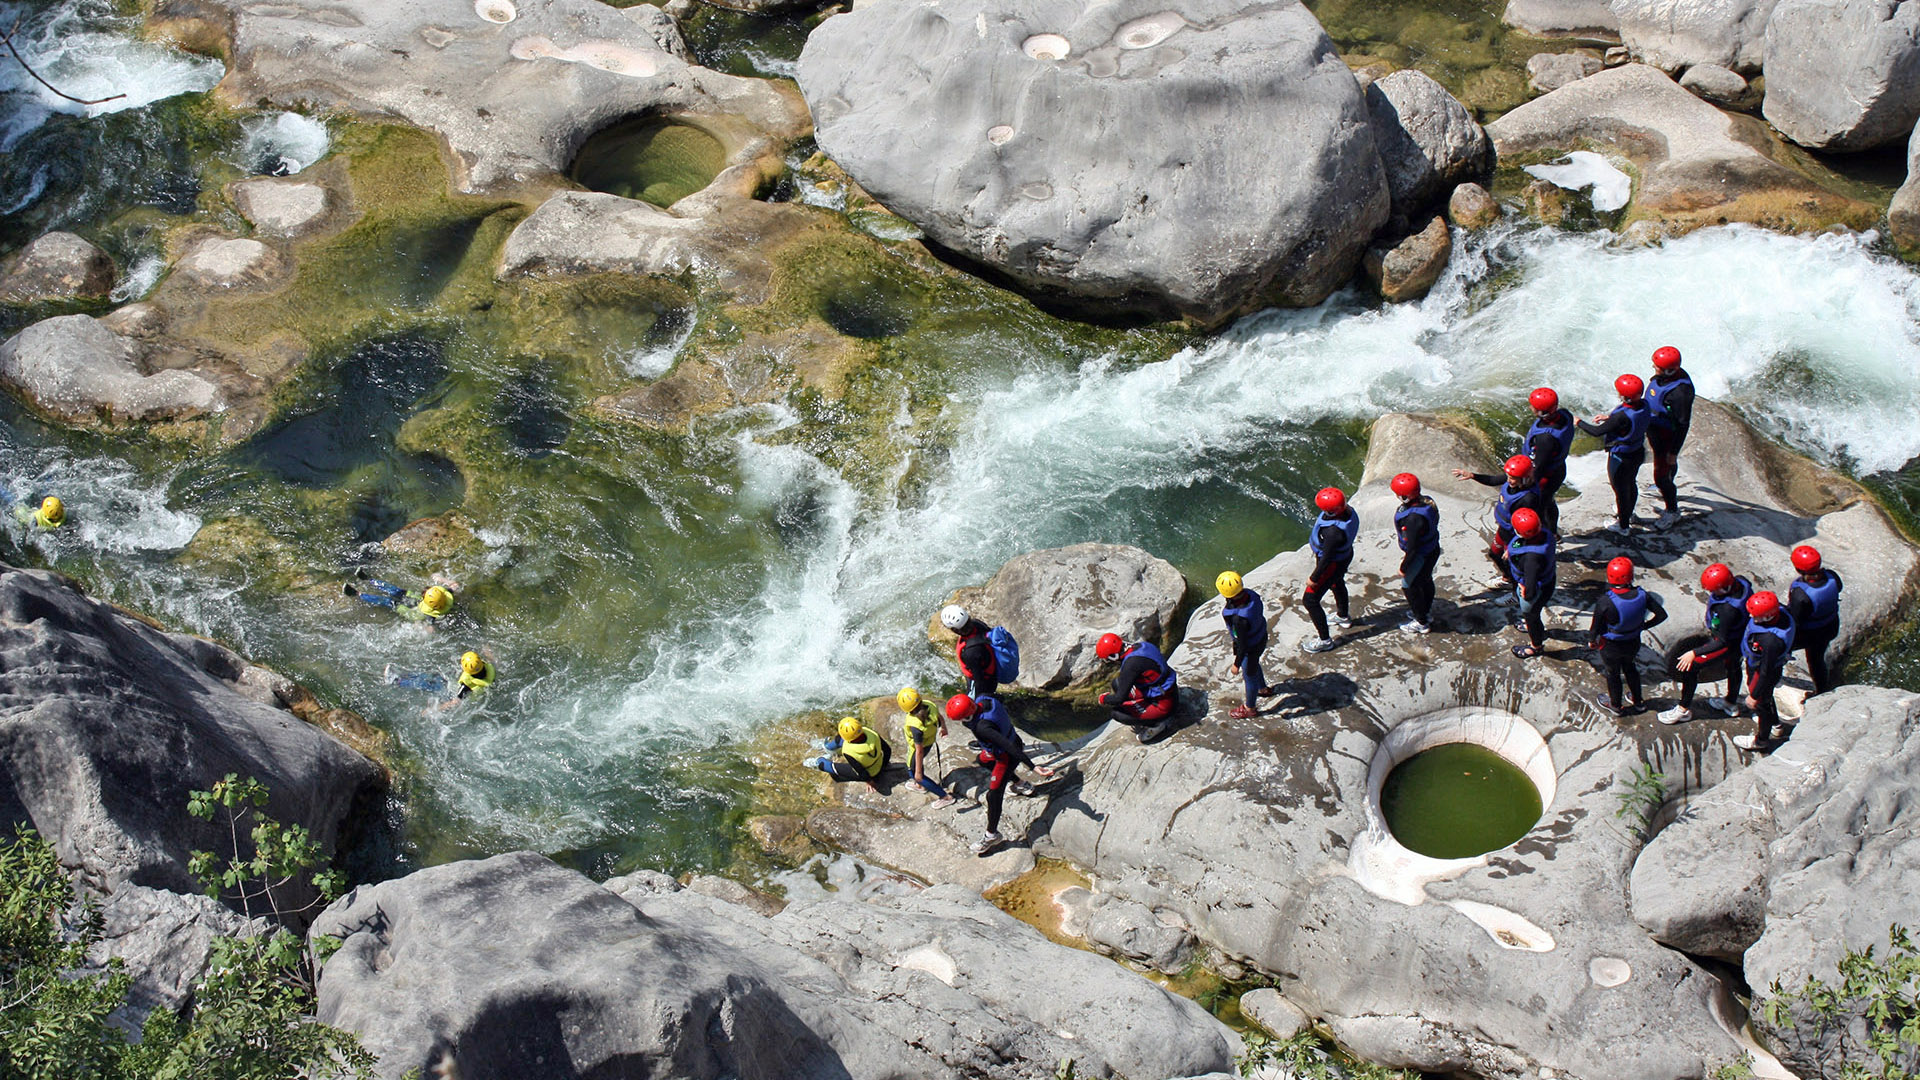 river canyoning adrenaline adventure 6